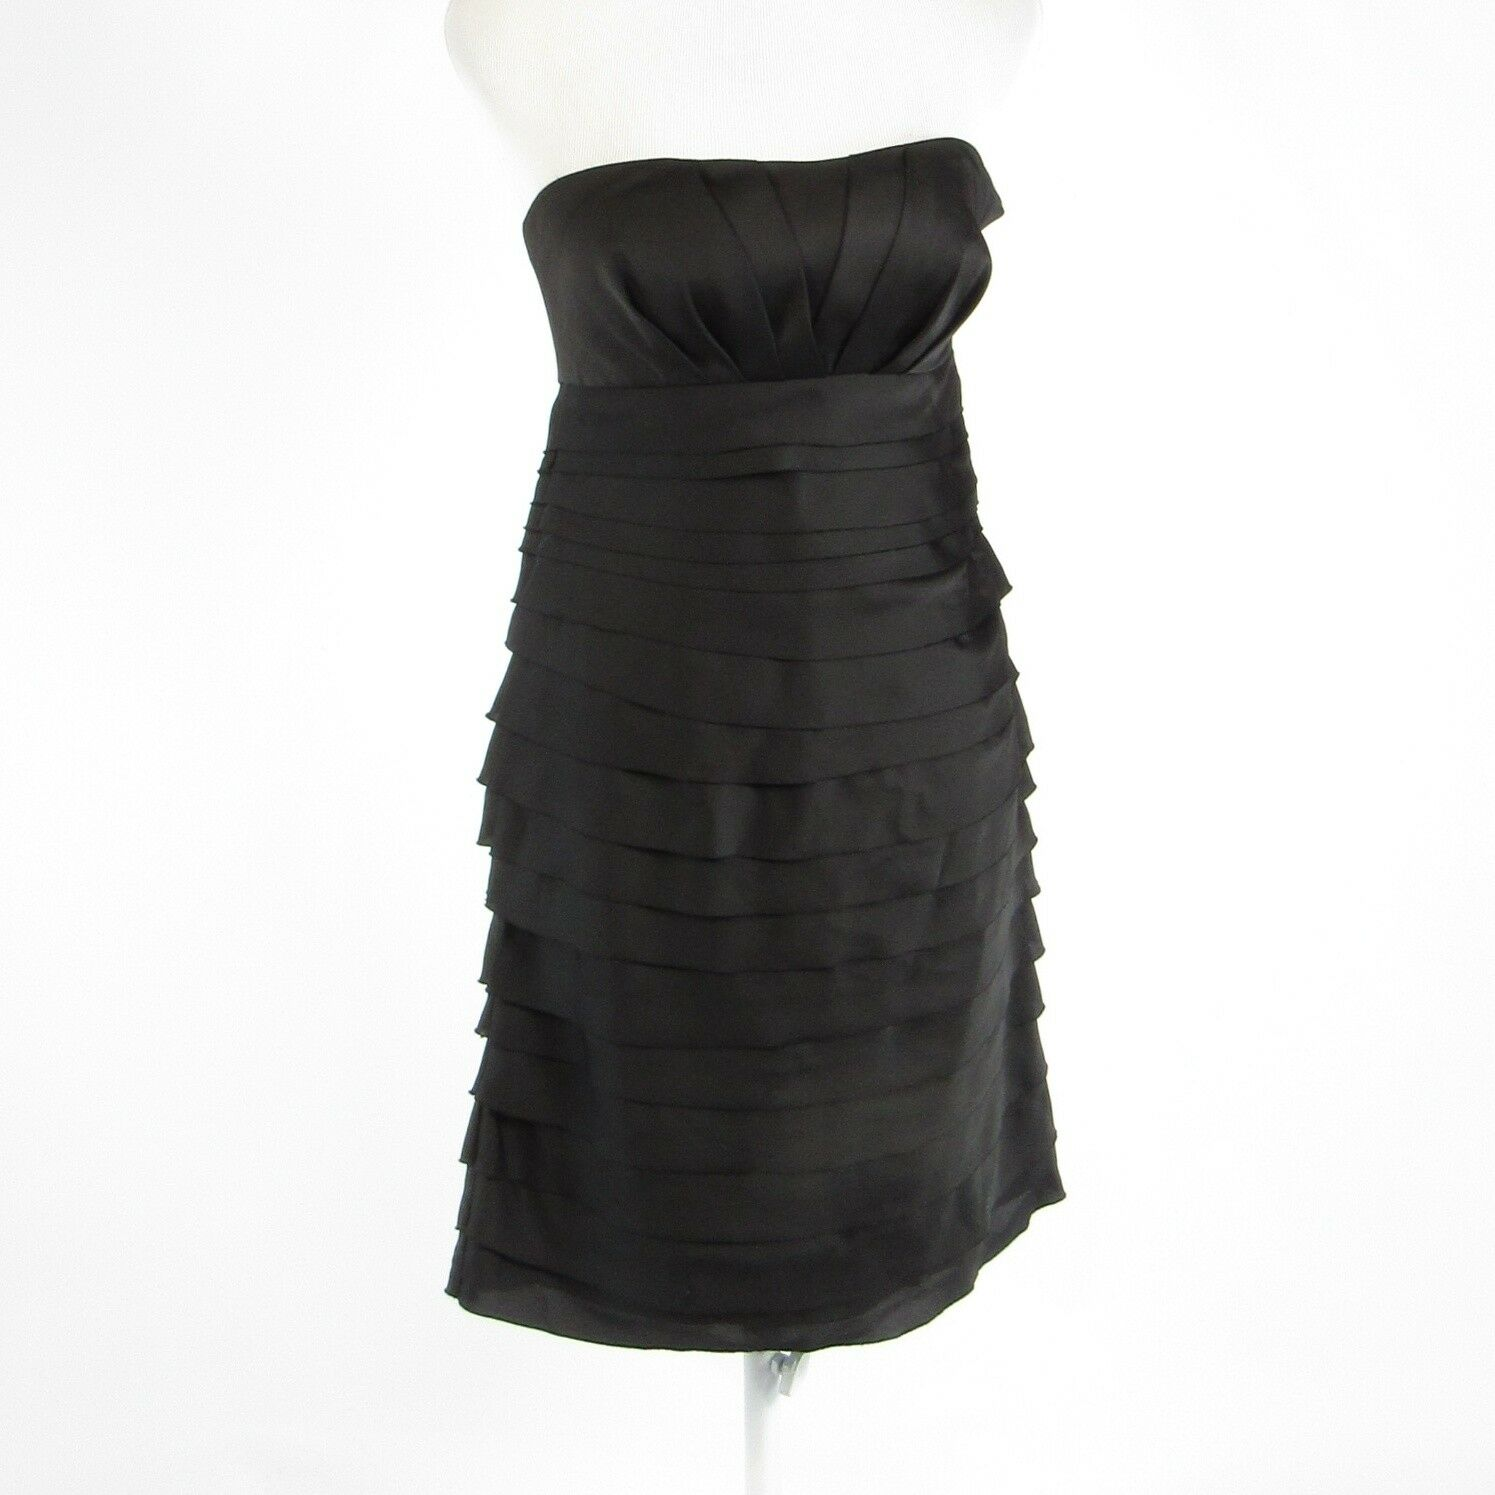 Black MAX AND CLEO sleeveless tiered dress 2 NWT $168-Newish